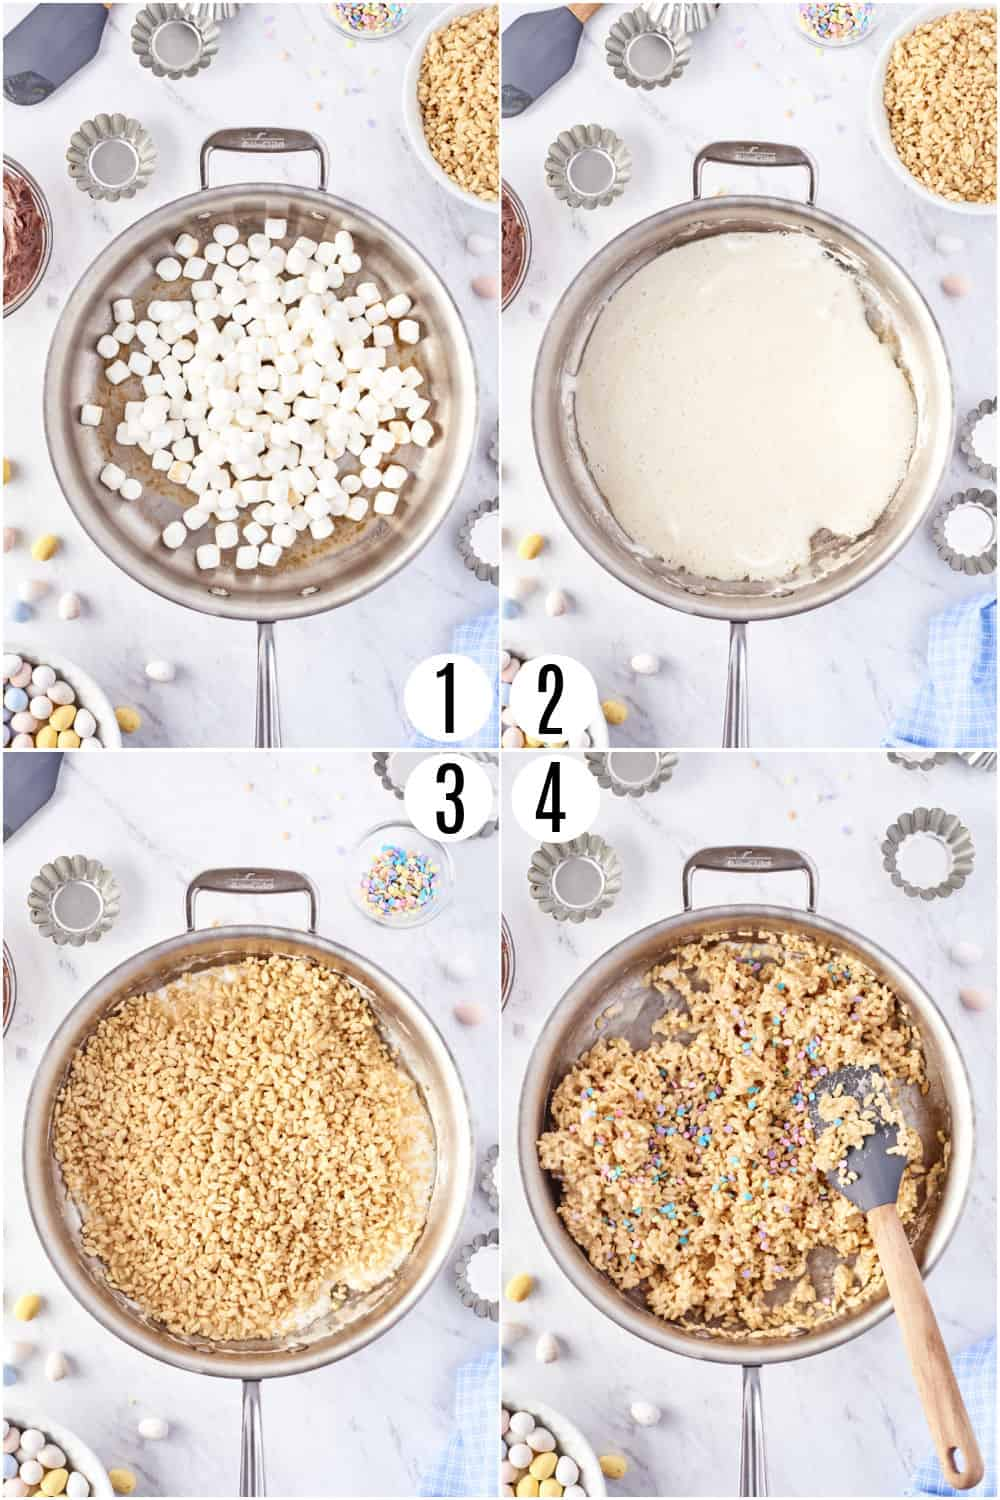 Step by step photos showing how to make rice krispie treats for easter.